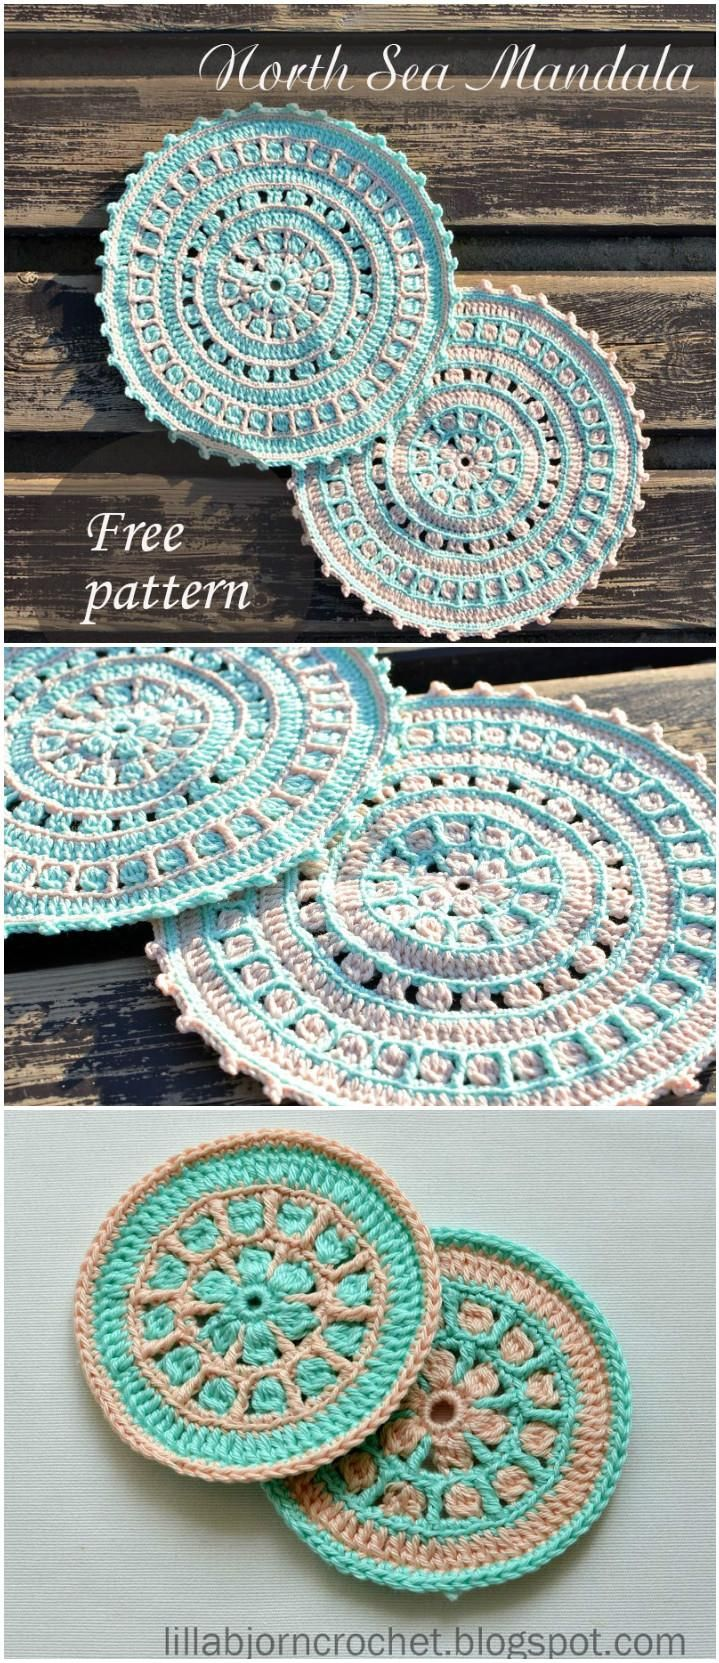 60+ Free Crochet Mandala Patterns | Pinterest | Waschlappen, Häkeln ...